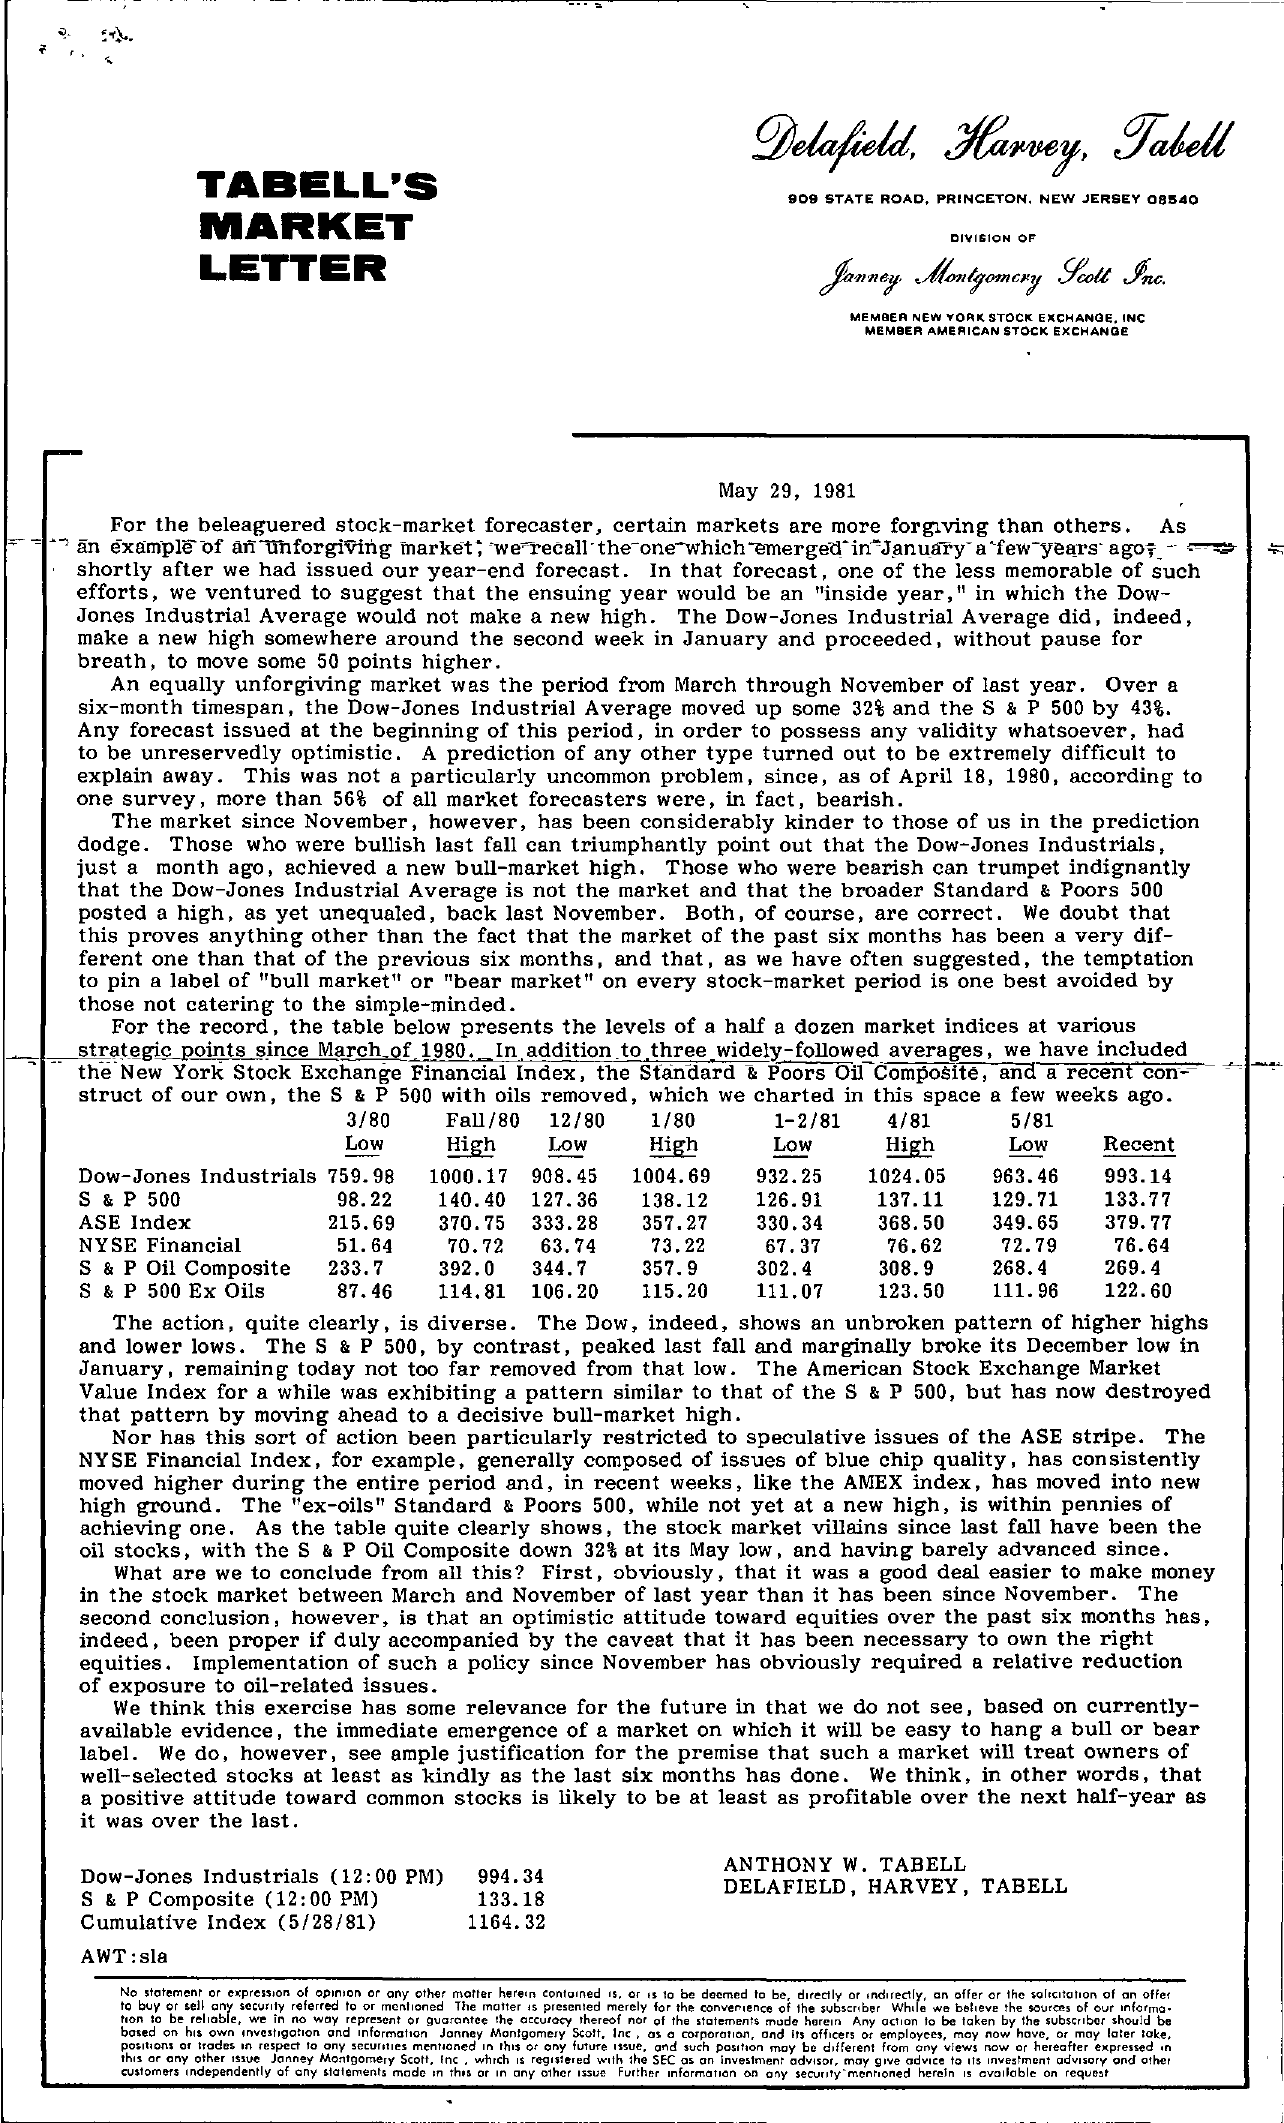 Tabell's Market Letter - May 29, 1981